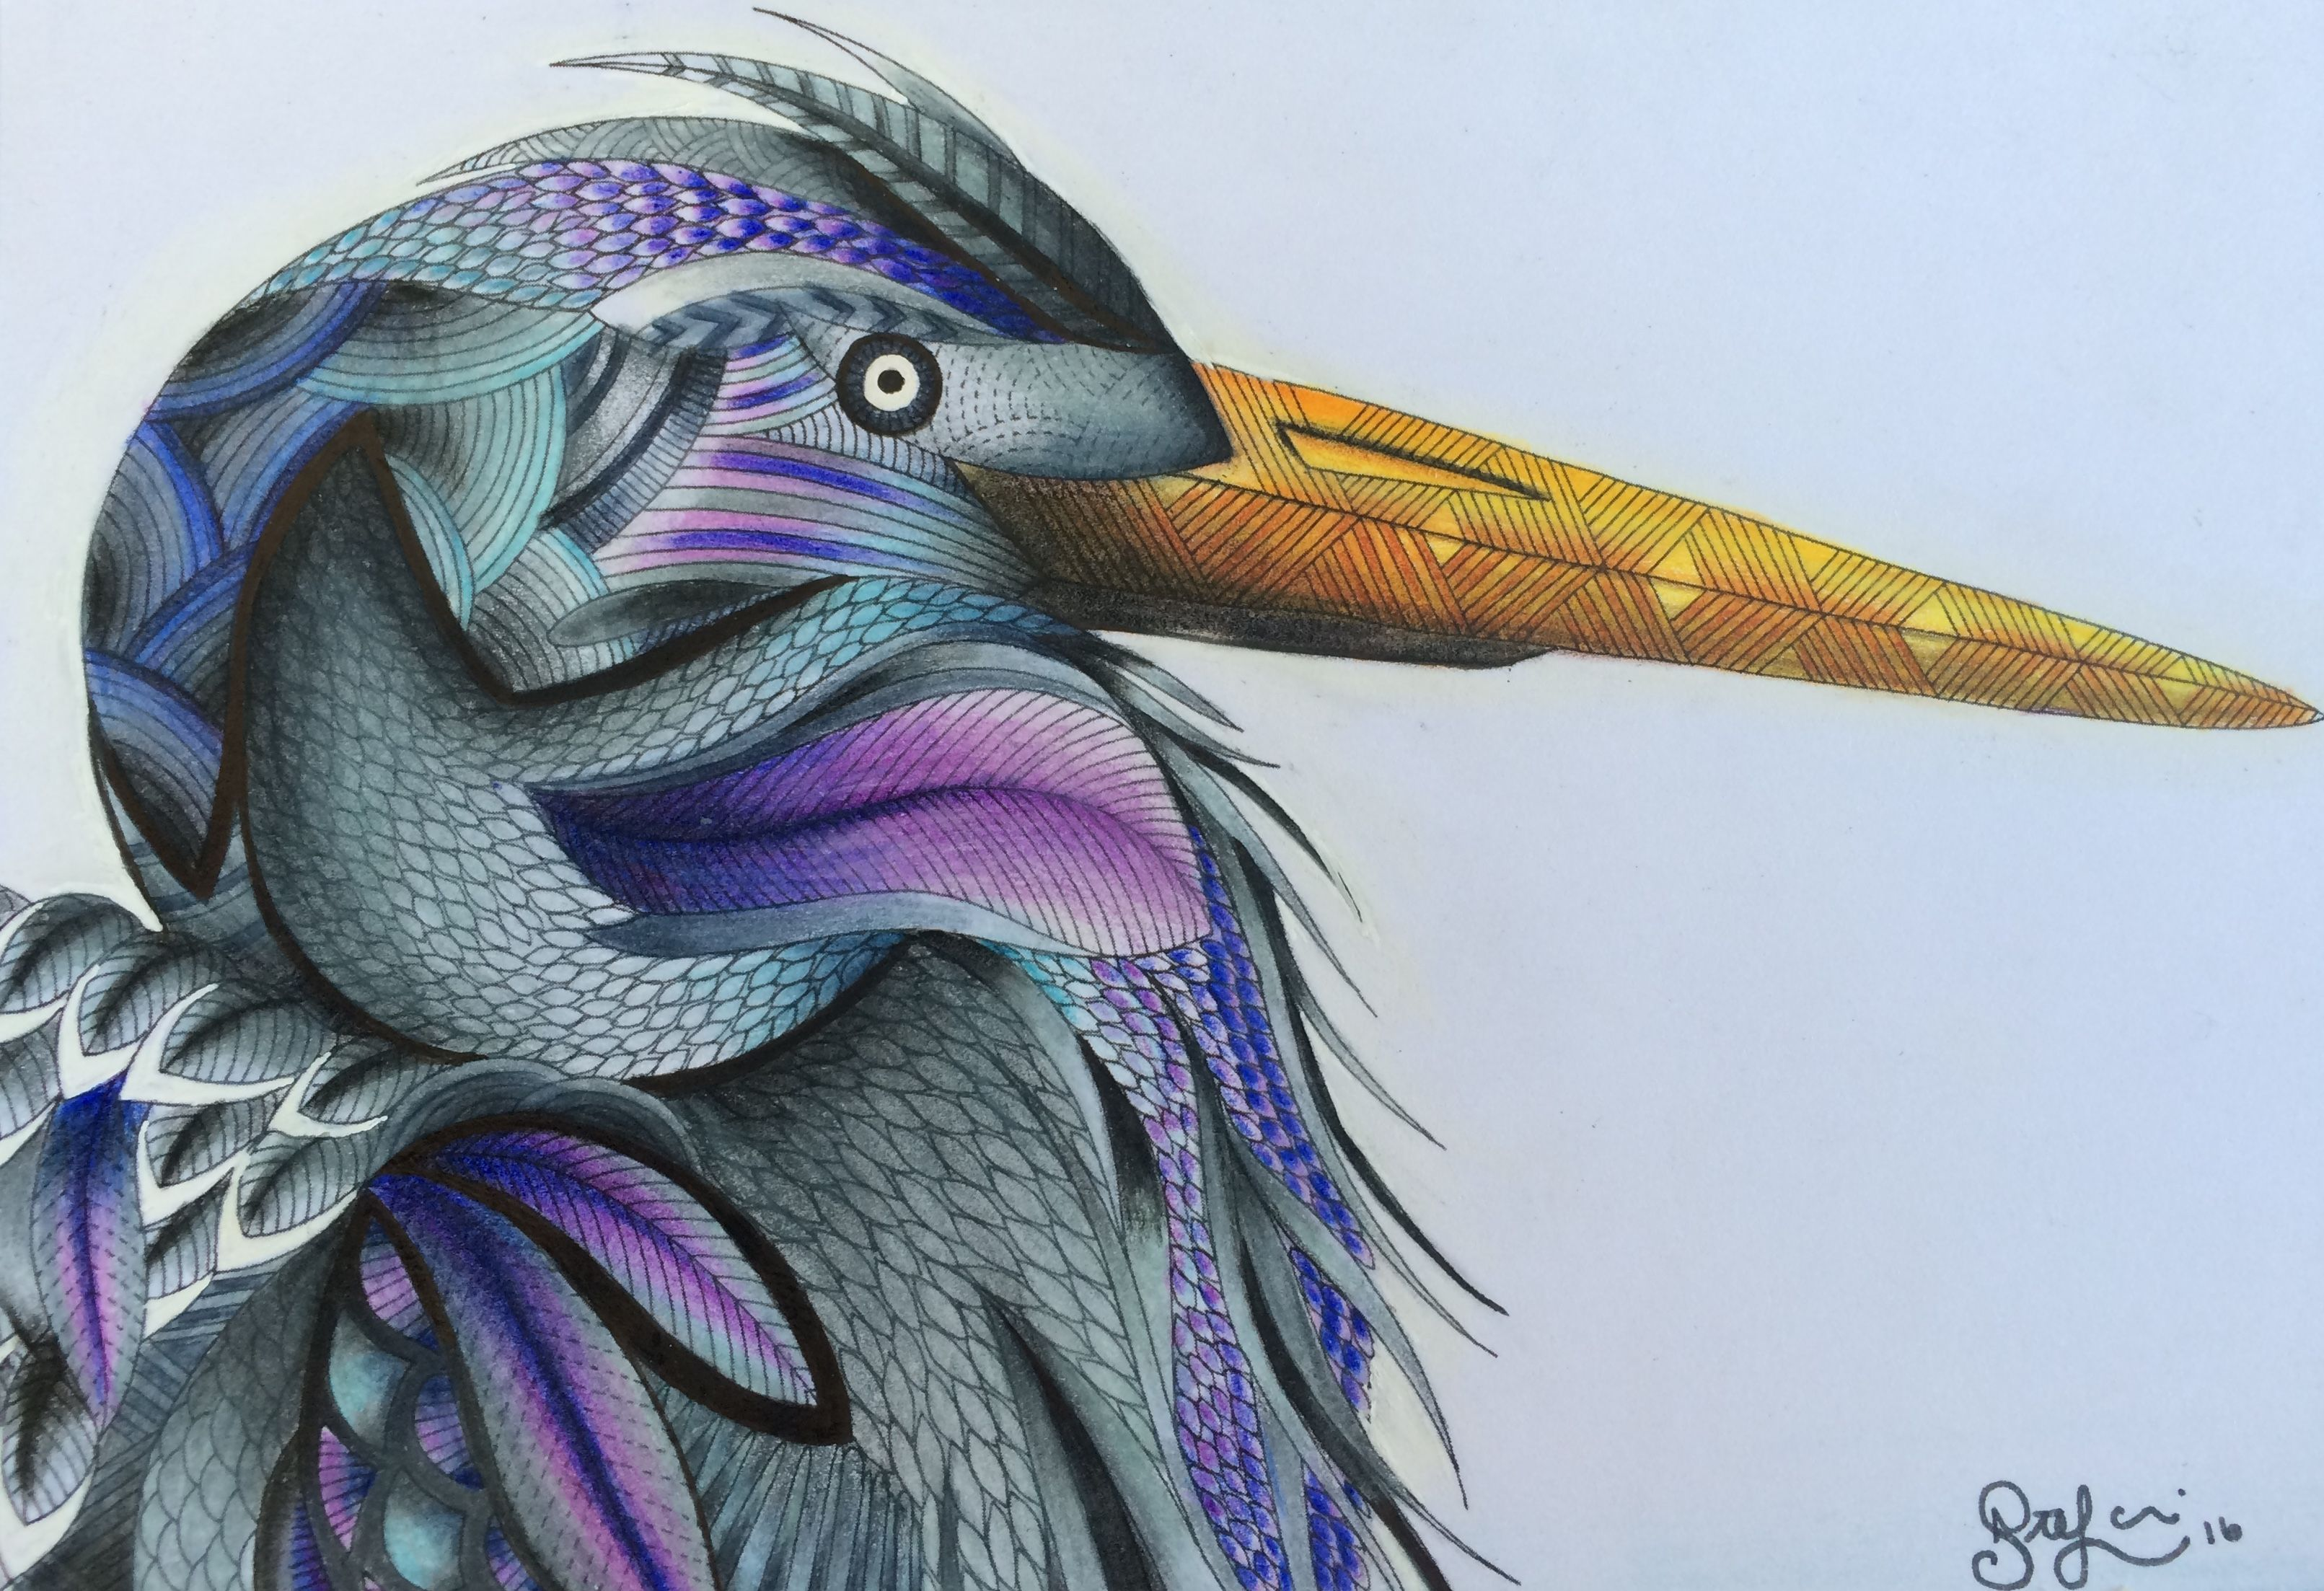 Heron From Millie Marotta S Animal Kingdom Colouring Book Adultcolou Millie Marotta Animal Kingdom Millie Marotta Coloring Book Animal Kingdom Colouring Book